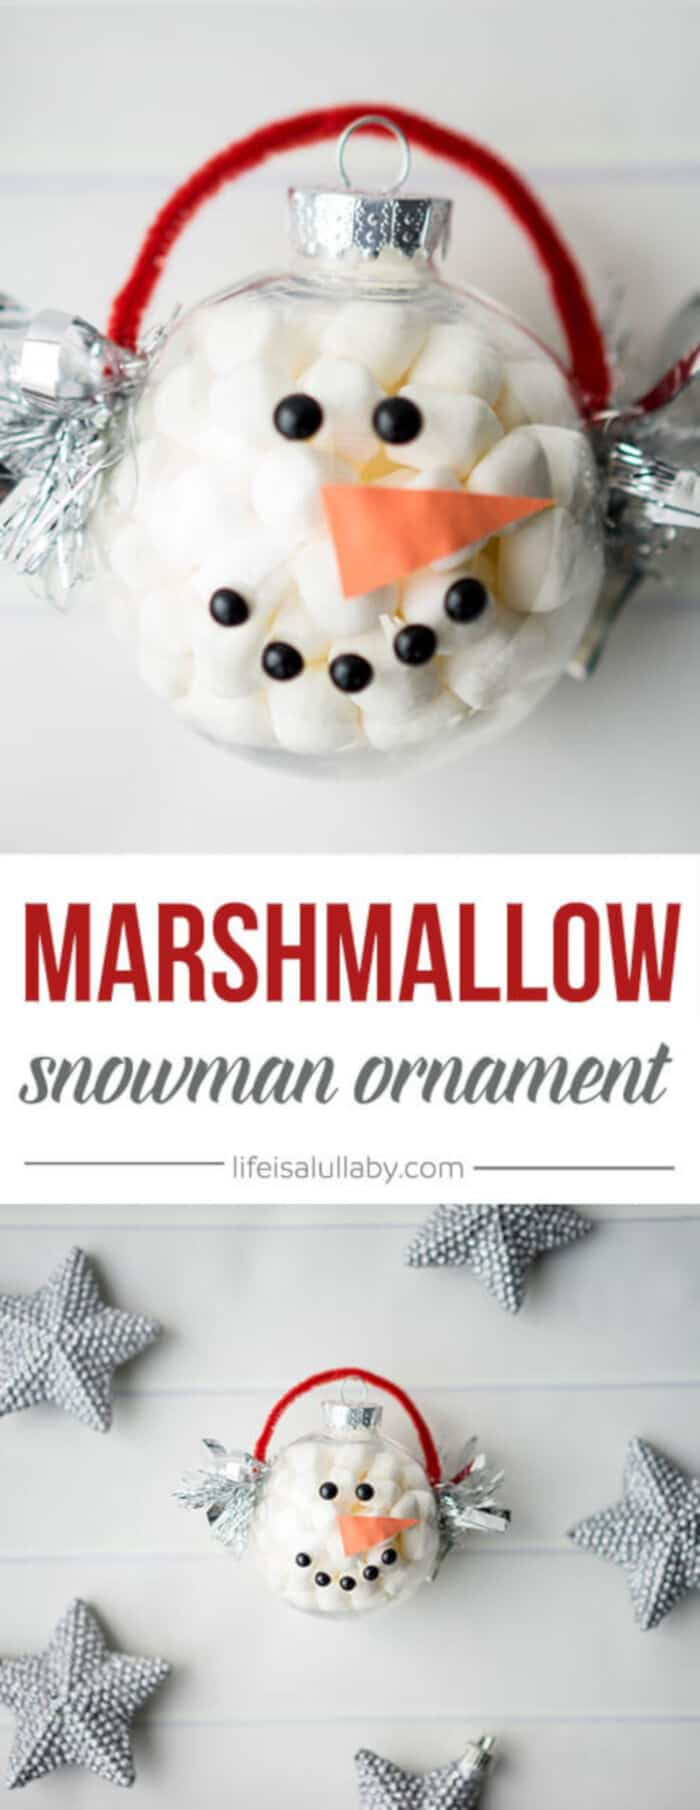 Marshmallow Snowman Ornament by The Best Ideas for Kids